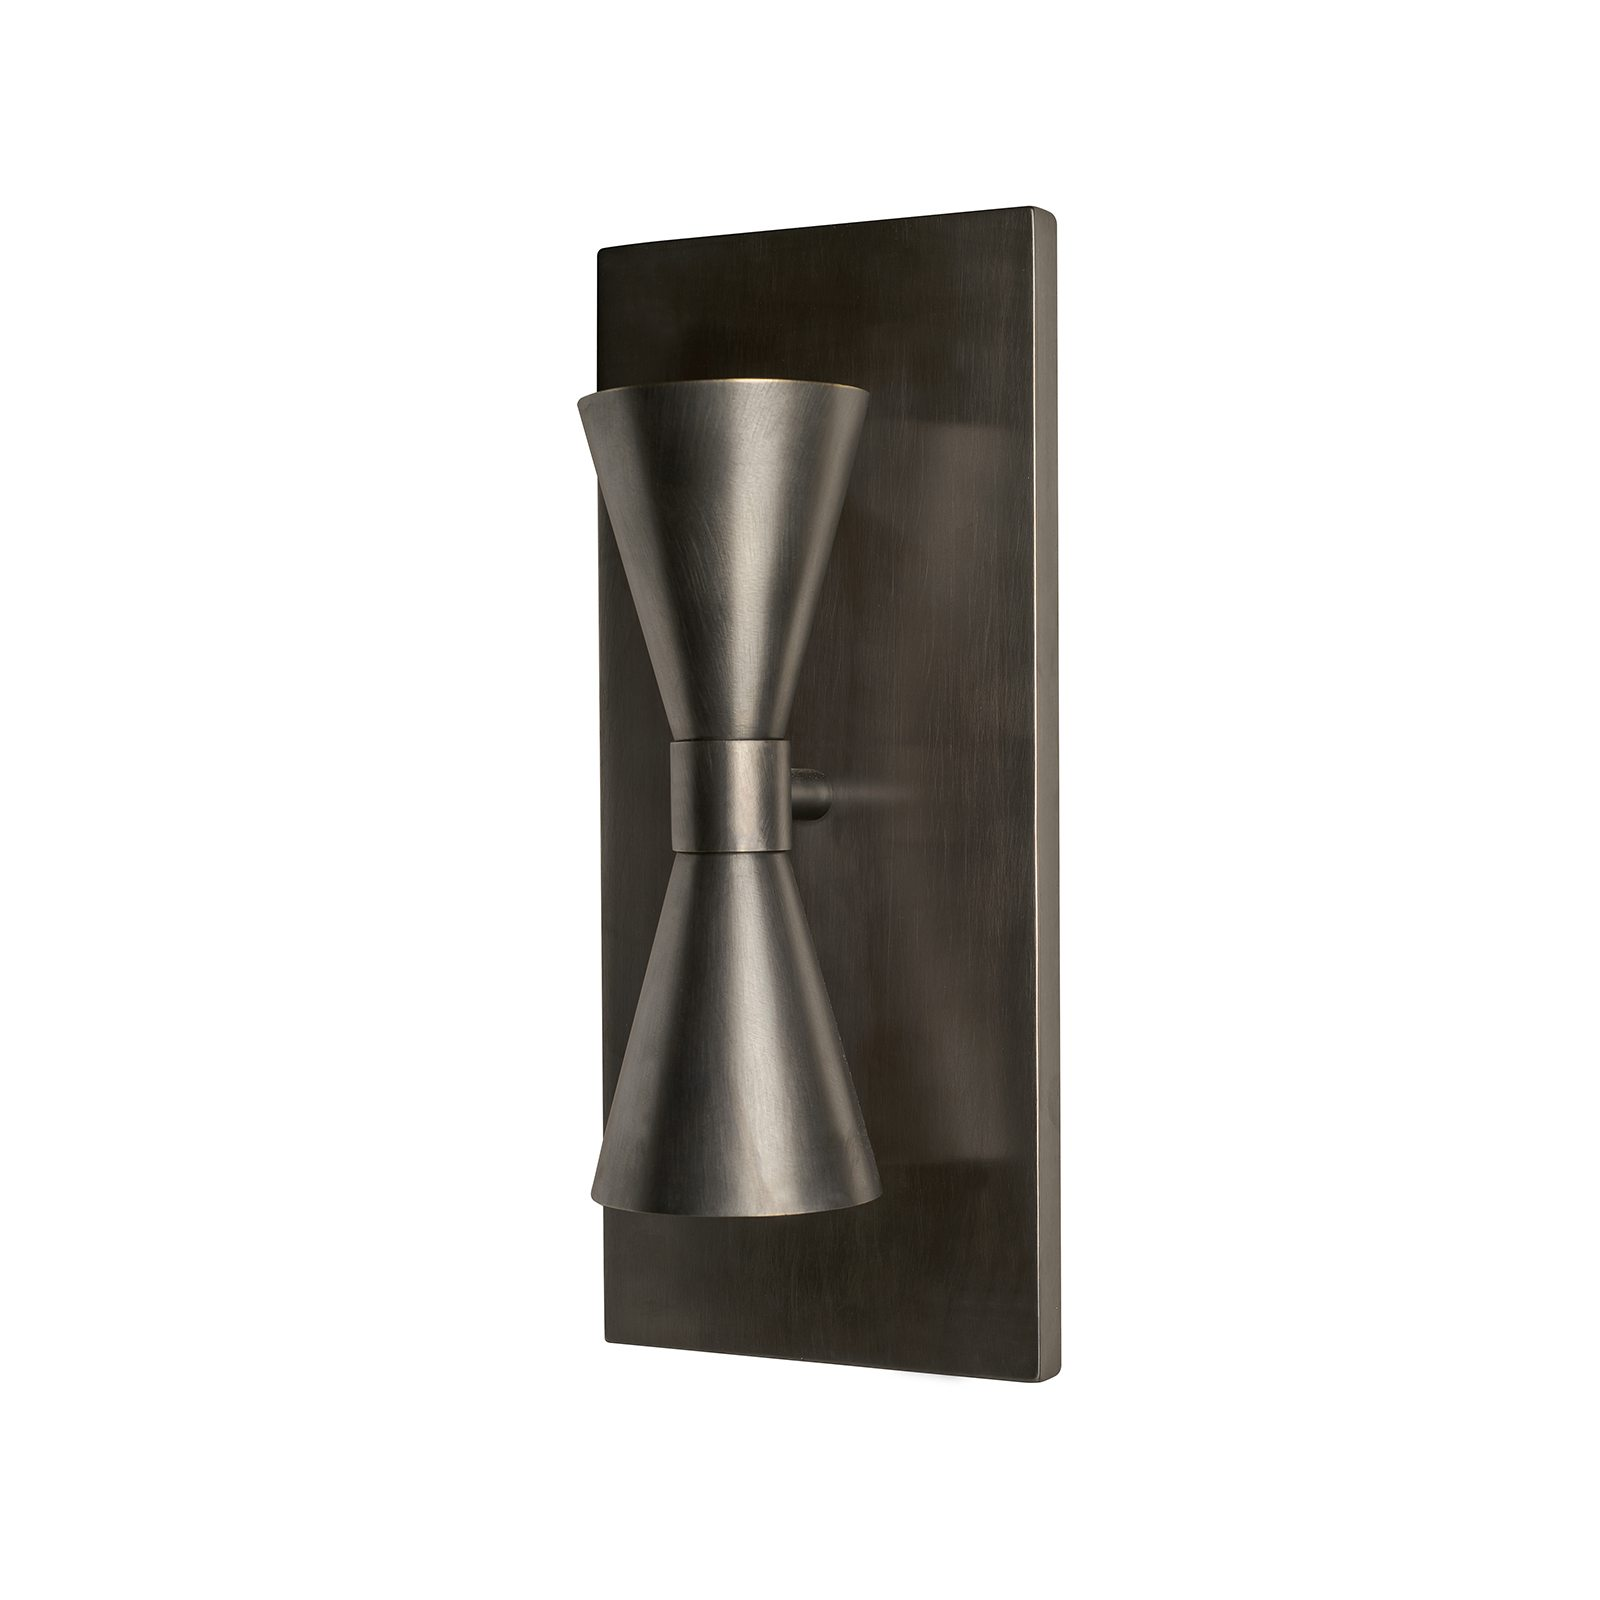 Conical Wall Lamp by Bonham & Bonham